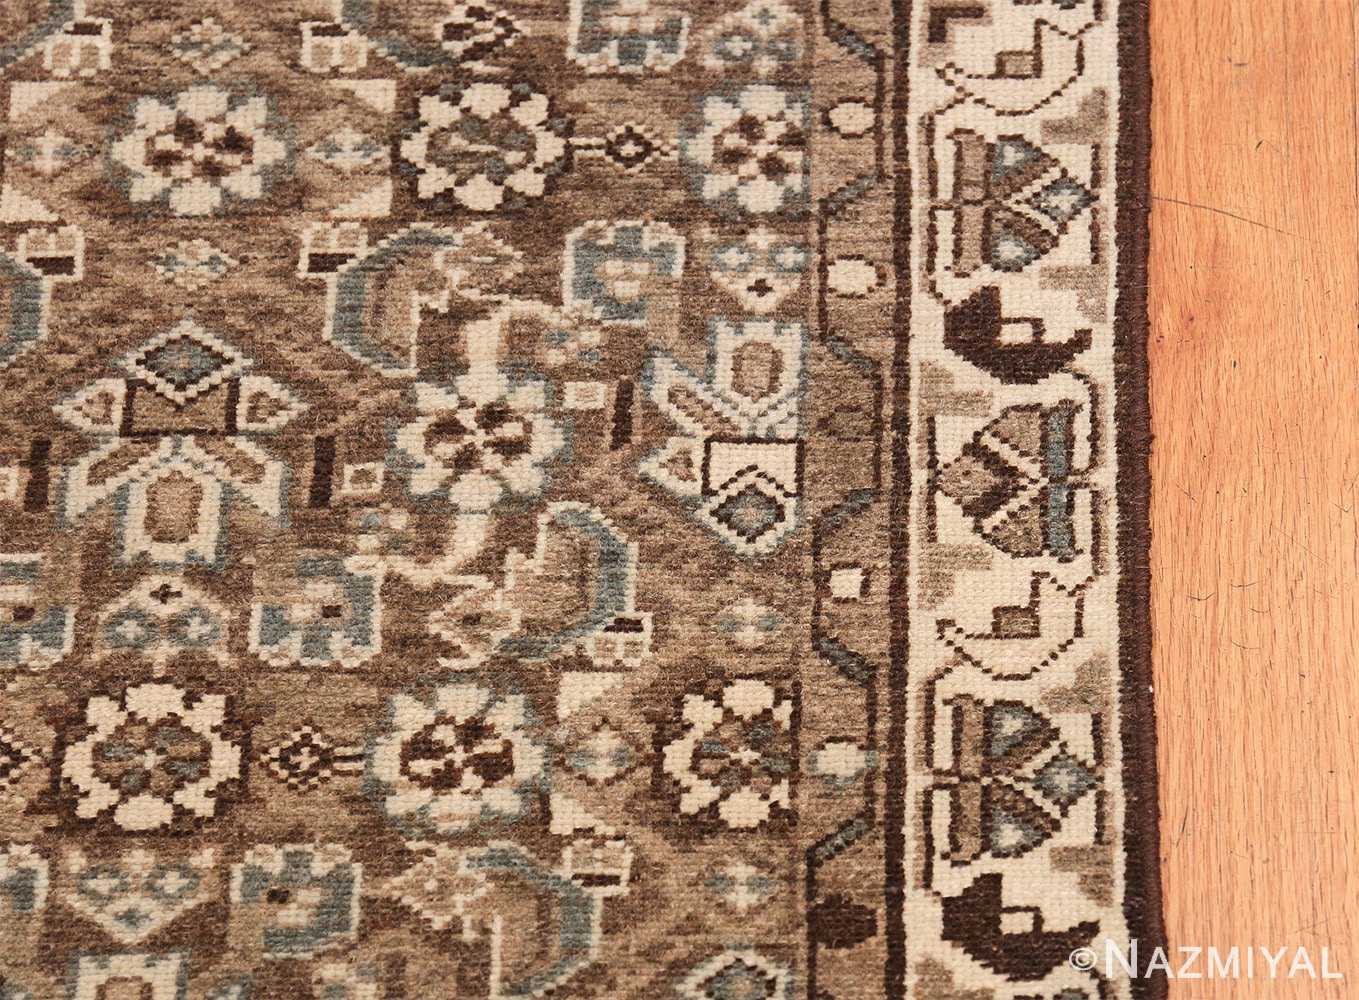 Decorative Earth Tone Antique Persian Malayer Runner Rug 49630 Border Design Nazmiyal